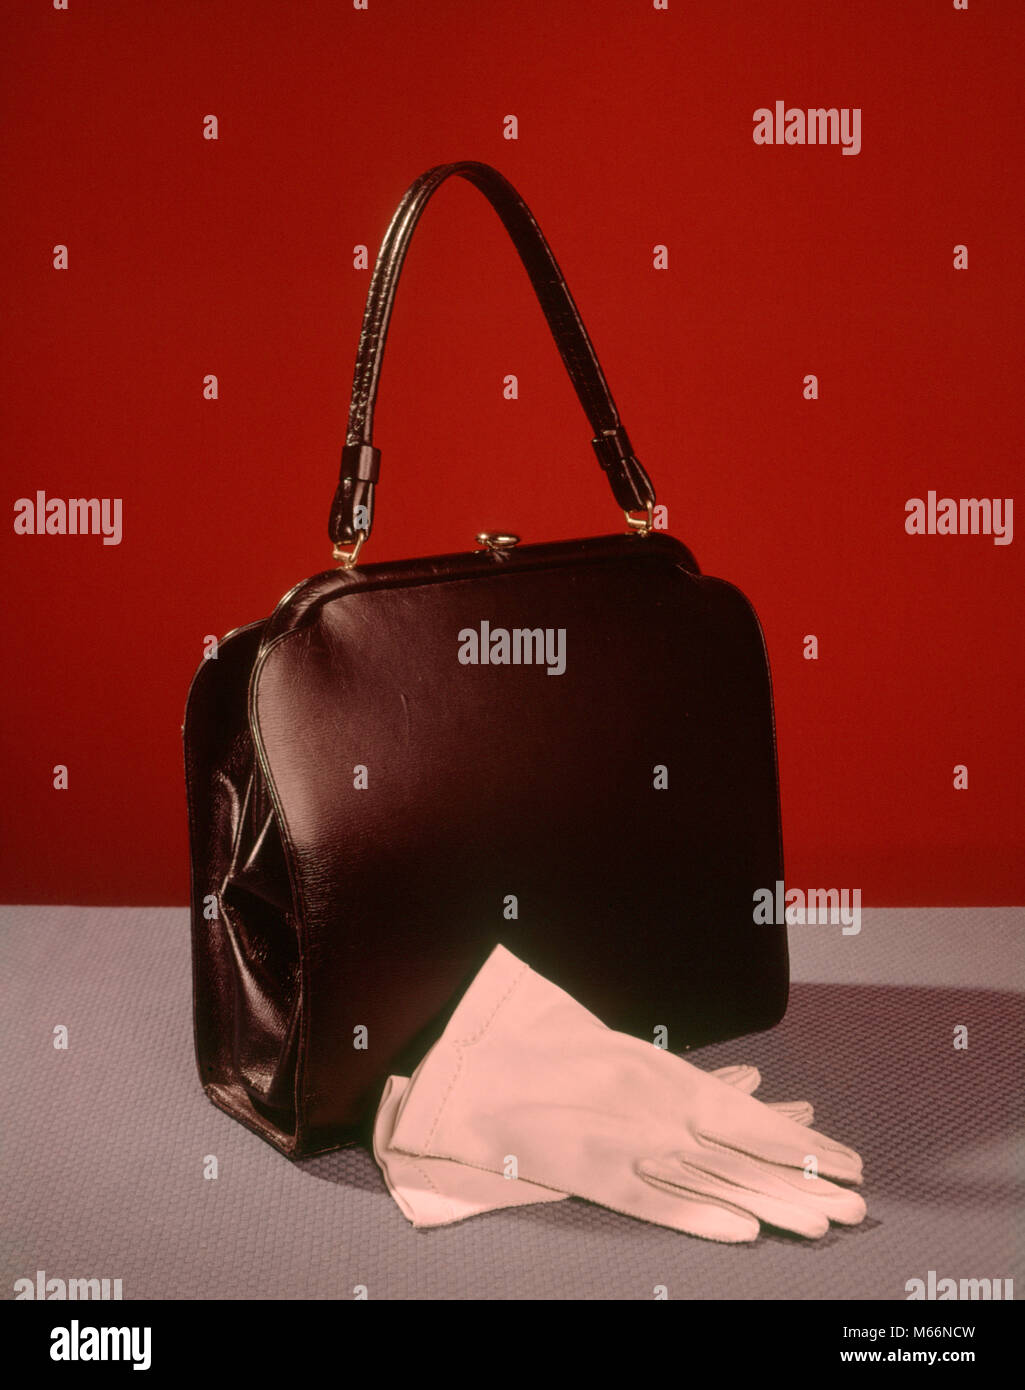 ca79425d07b 1950s 1960s STILL LIFE LADIES BLACK HANDBAG PAIR WHITE GLOVES ...